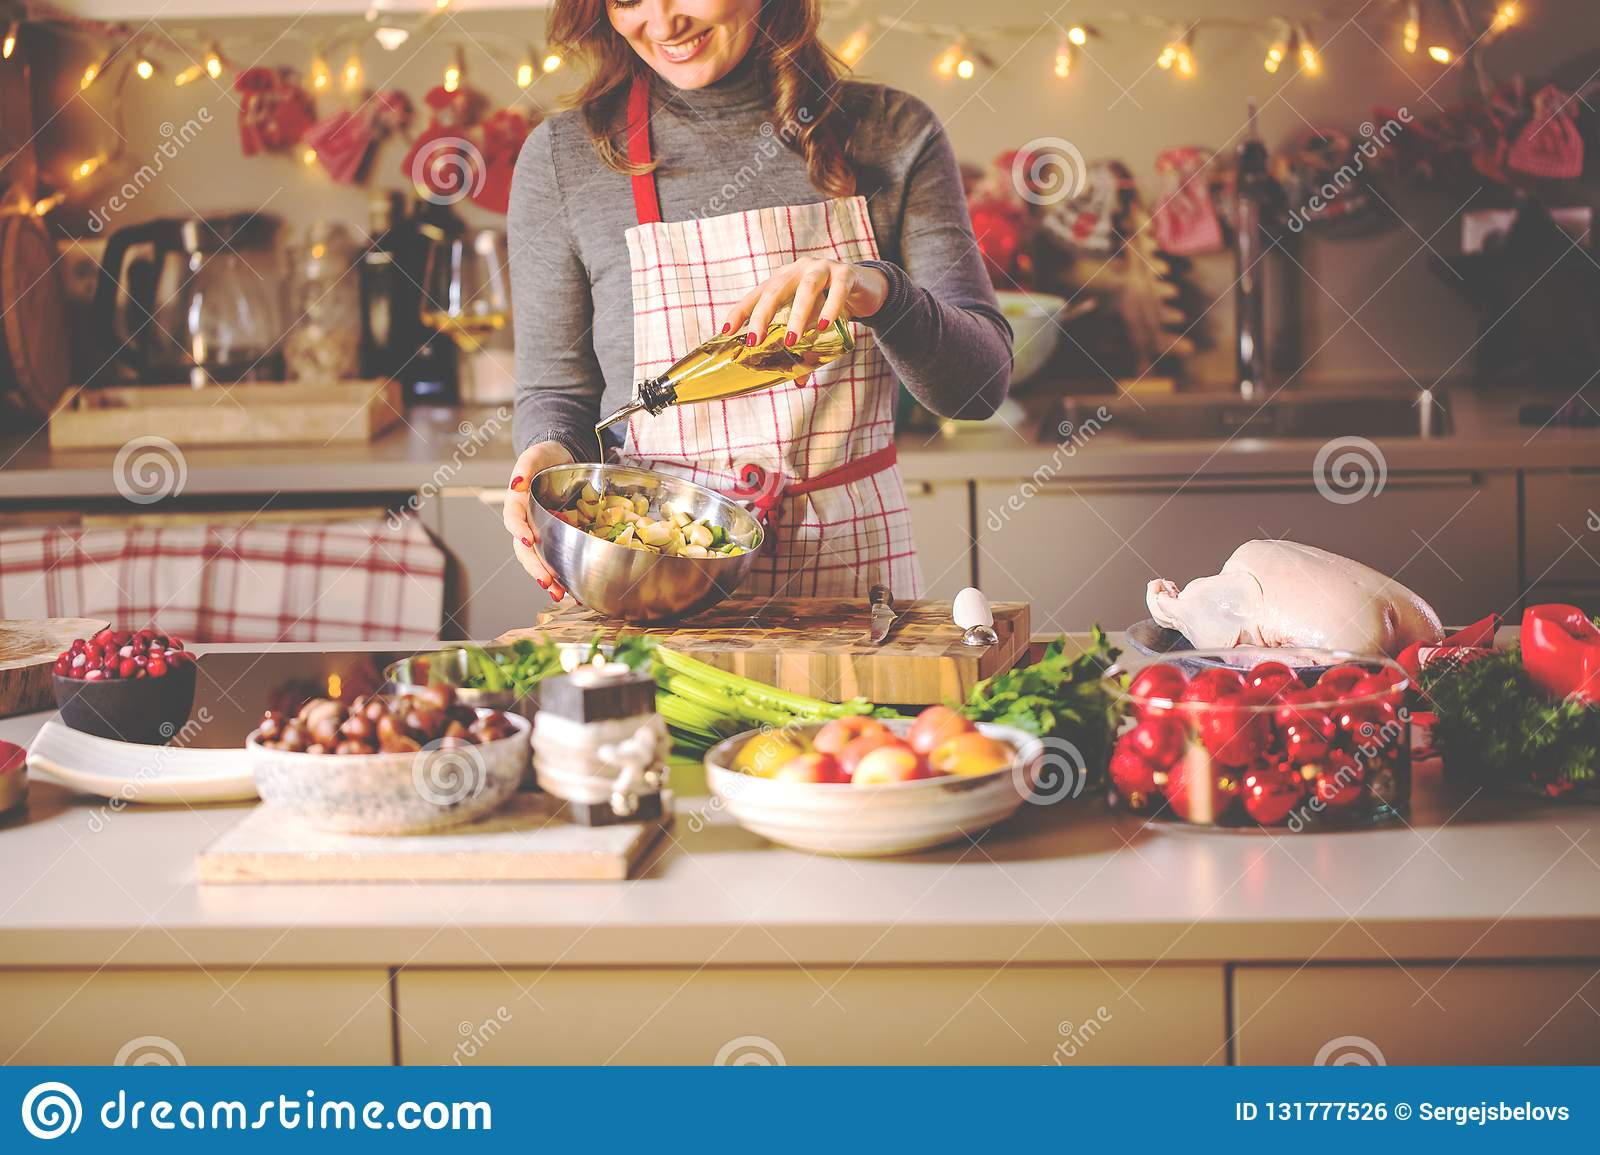 Young Woman Cooking in the kitchen. Healthy Food for Christmas stuffed duck or Goose